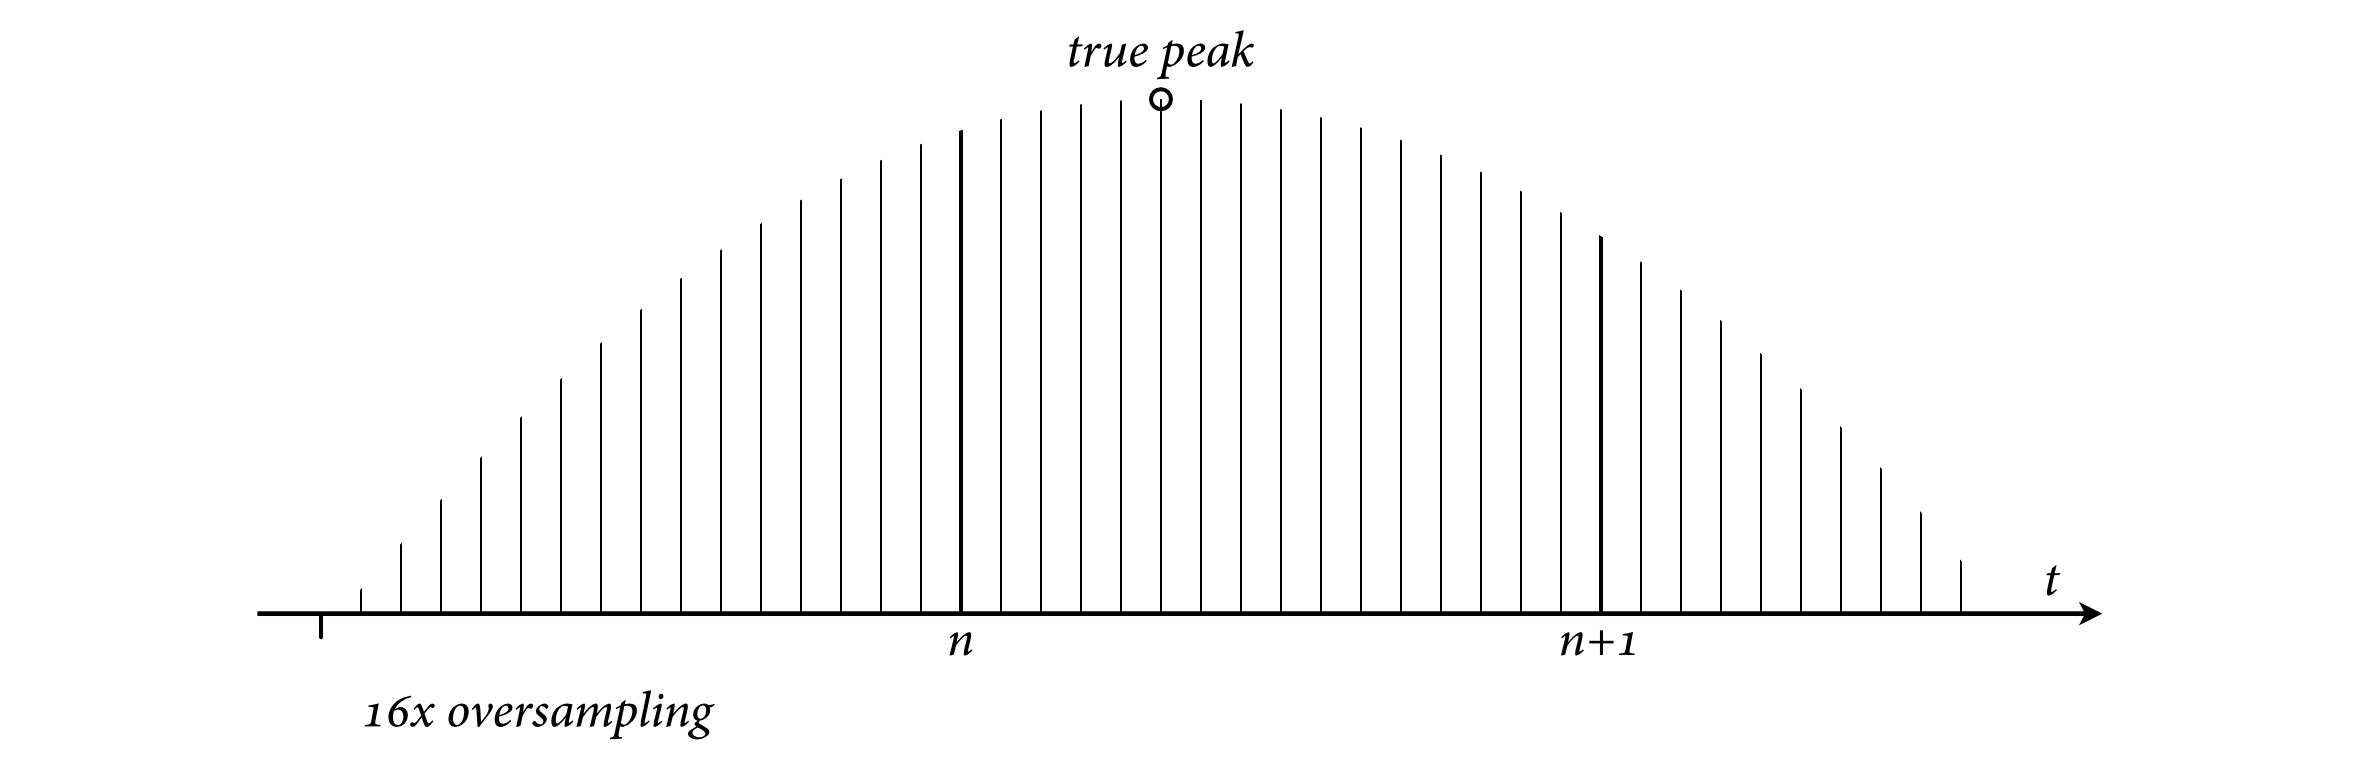 True peak, 16x oversampling.